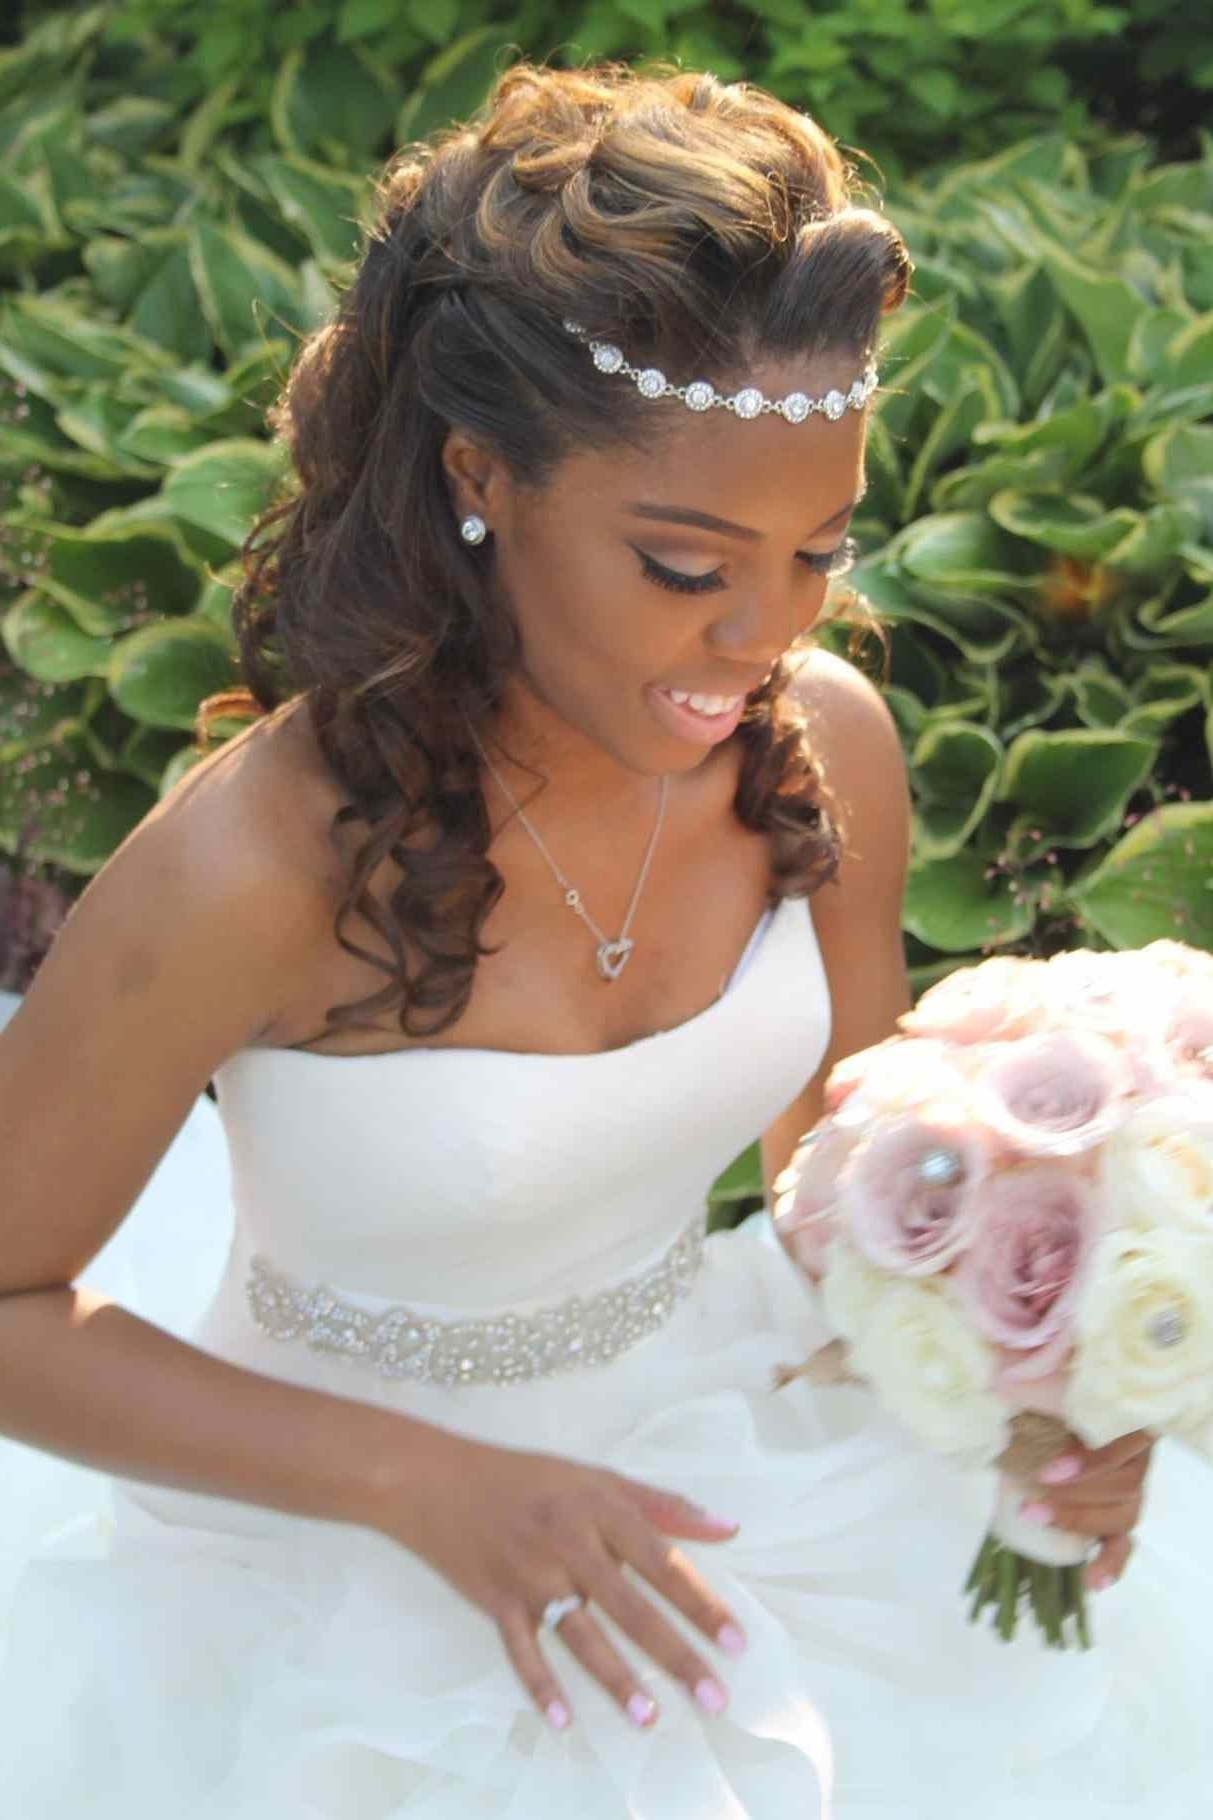 Bridal Hairstyles With Veil And Tiara Updo Bridal Updo Hairstyle With Regard To Wedding Updo Hairstyles With Veil (View 1 of 15)